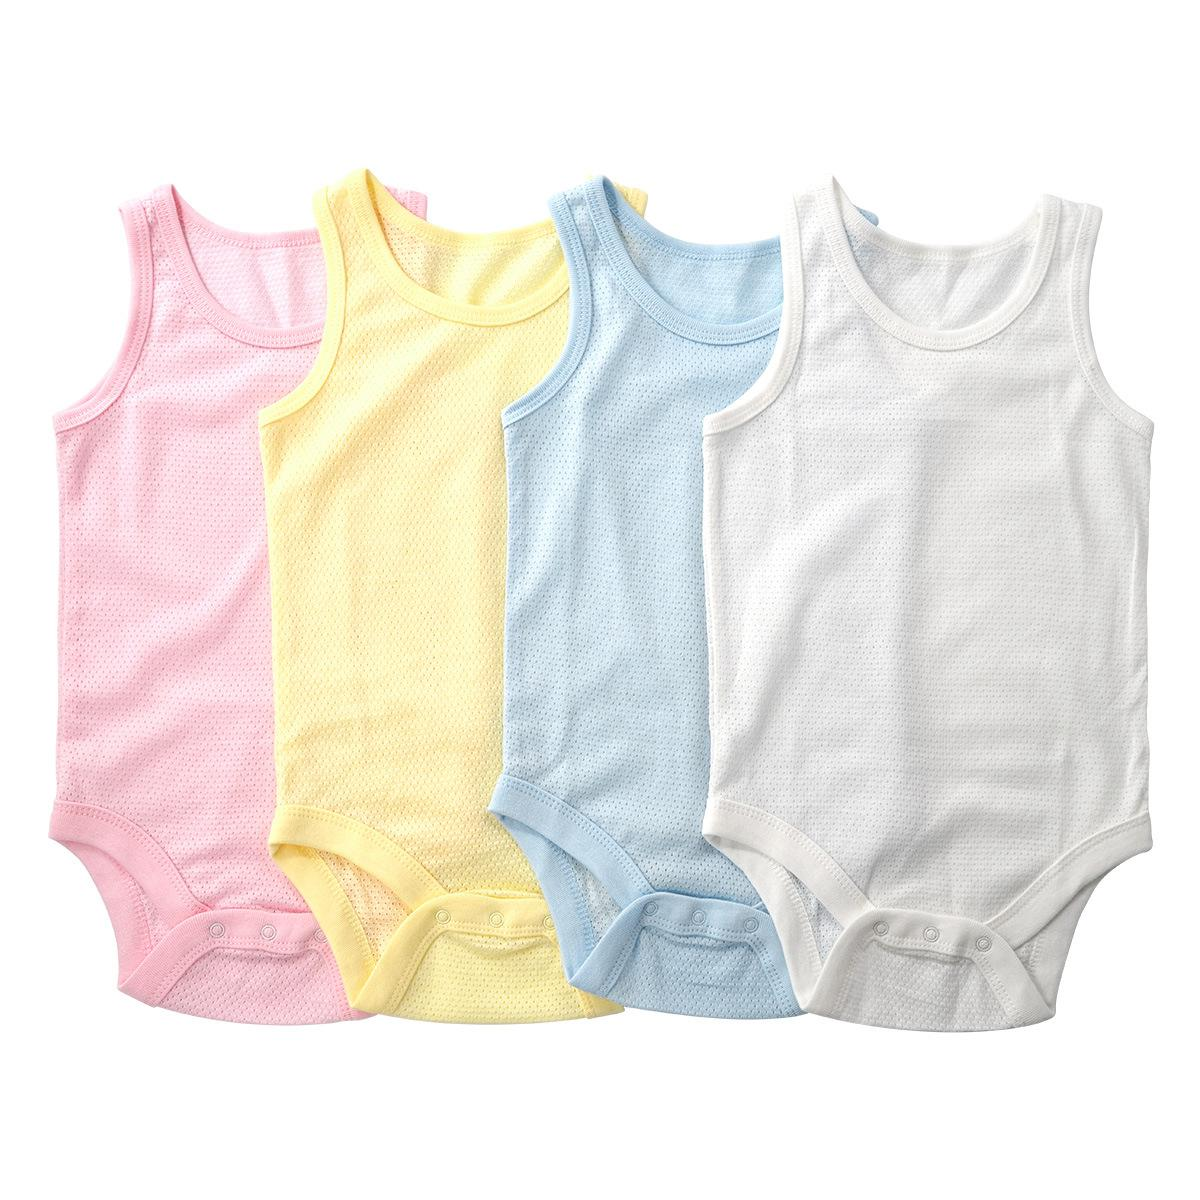 Newborn Baby Boys Girls Summer Thin Bodysuit Cute Baby Wear Vest Sports Breathable Cotton Mesh Clothes Infant Jumpsuit Pajamas